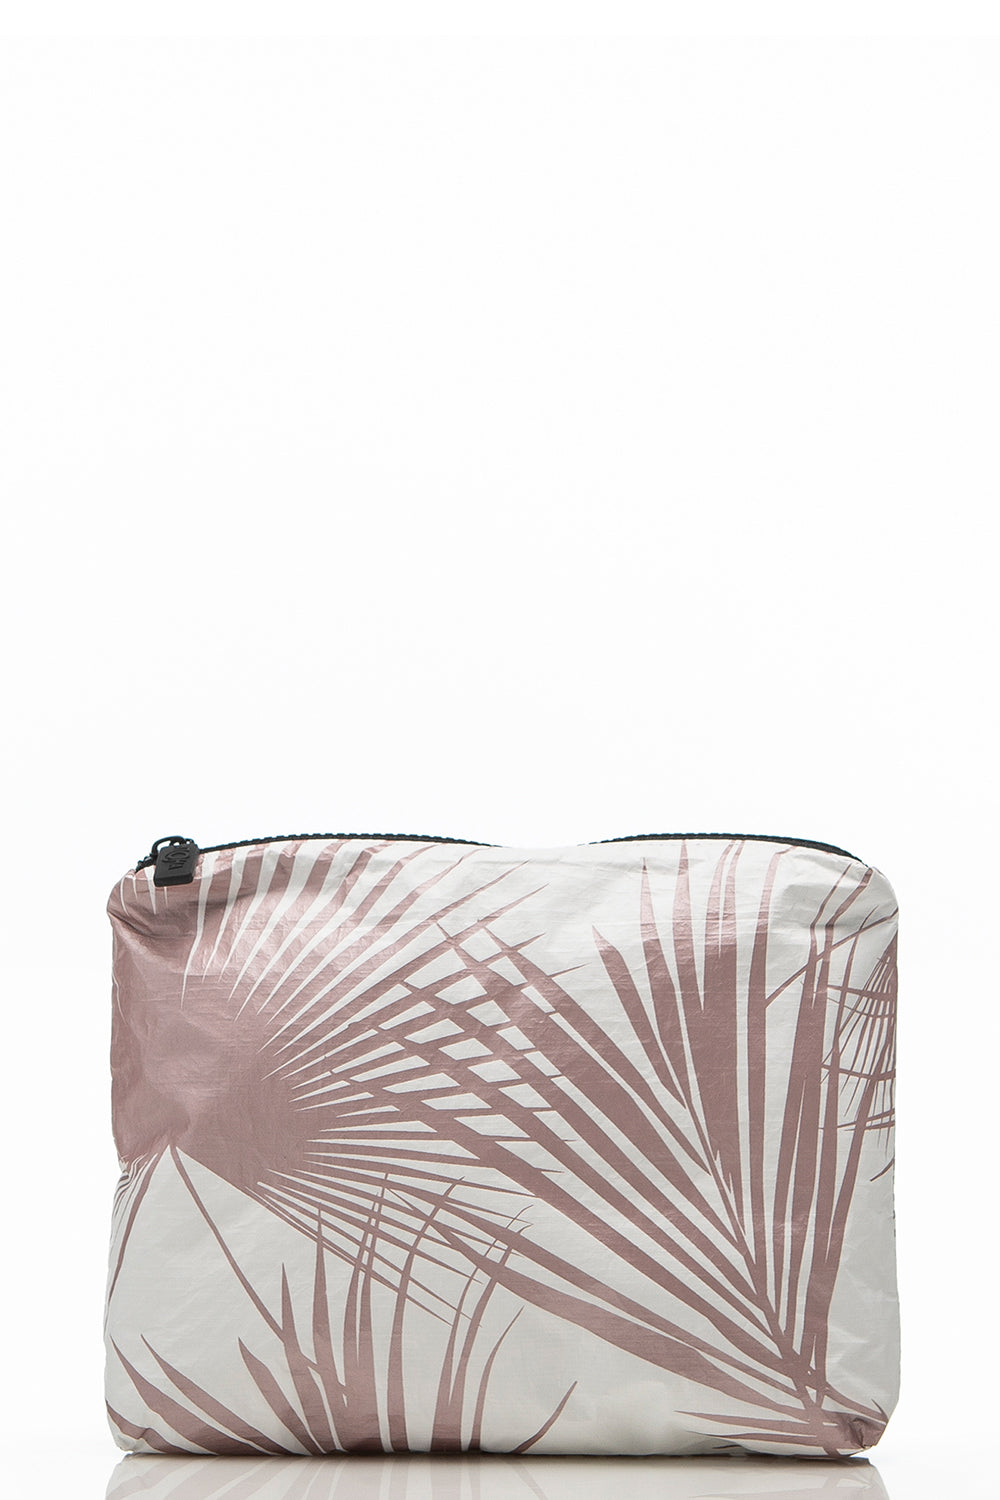 ALOHA Collection Small Day Palms Pouch in Rose Gold